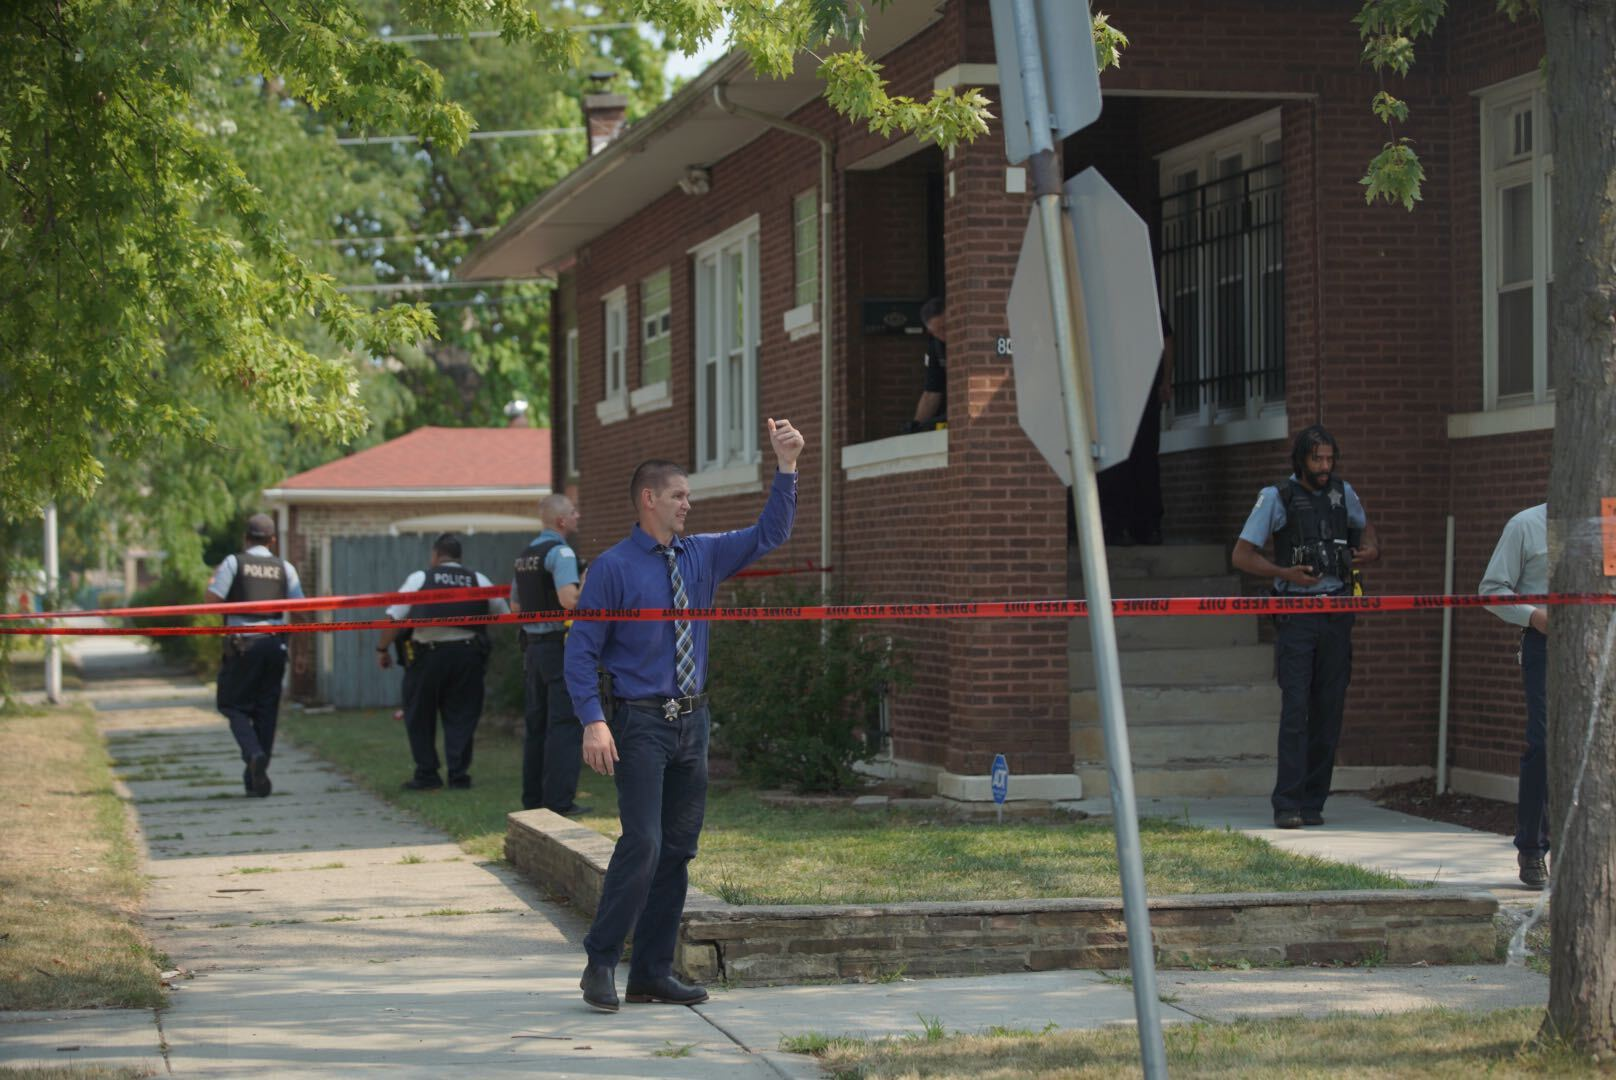 Police investigate Saturday after a boy was killed in the South Chicago neighborhood.